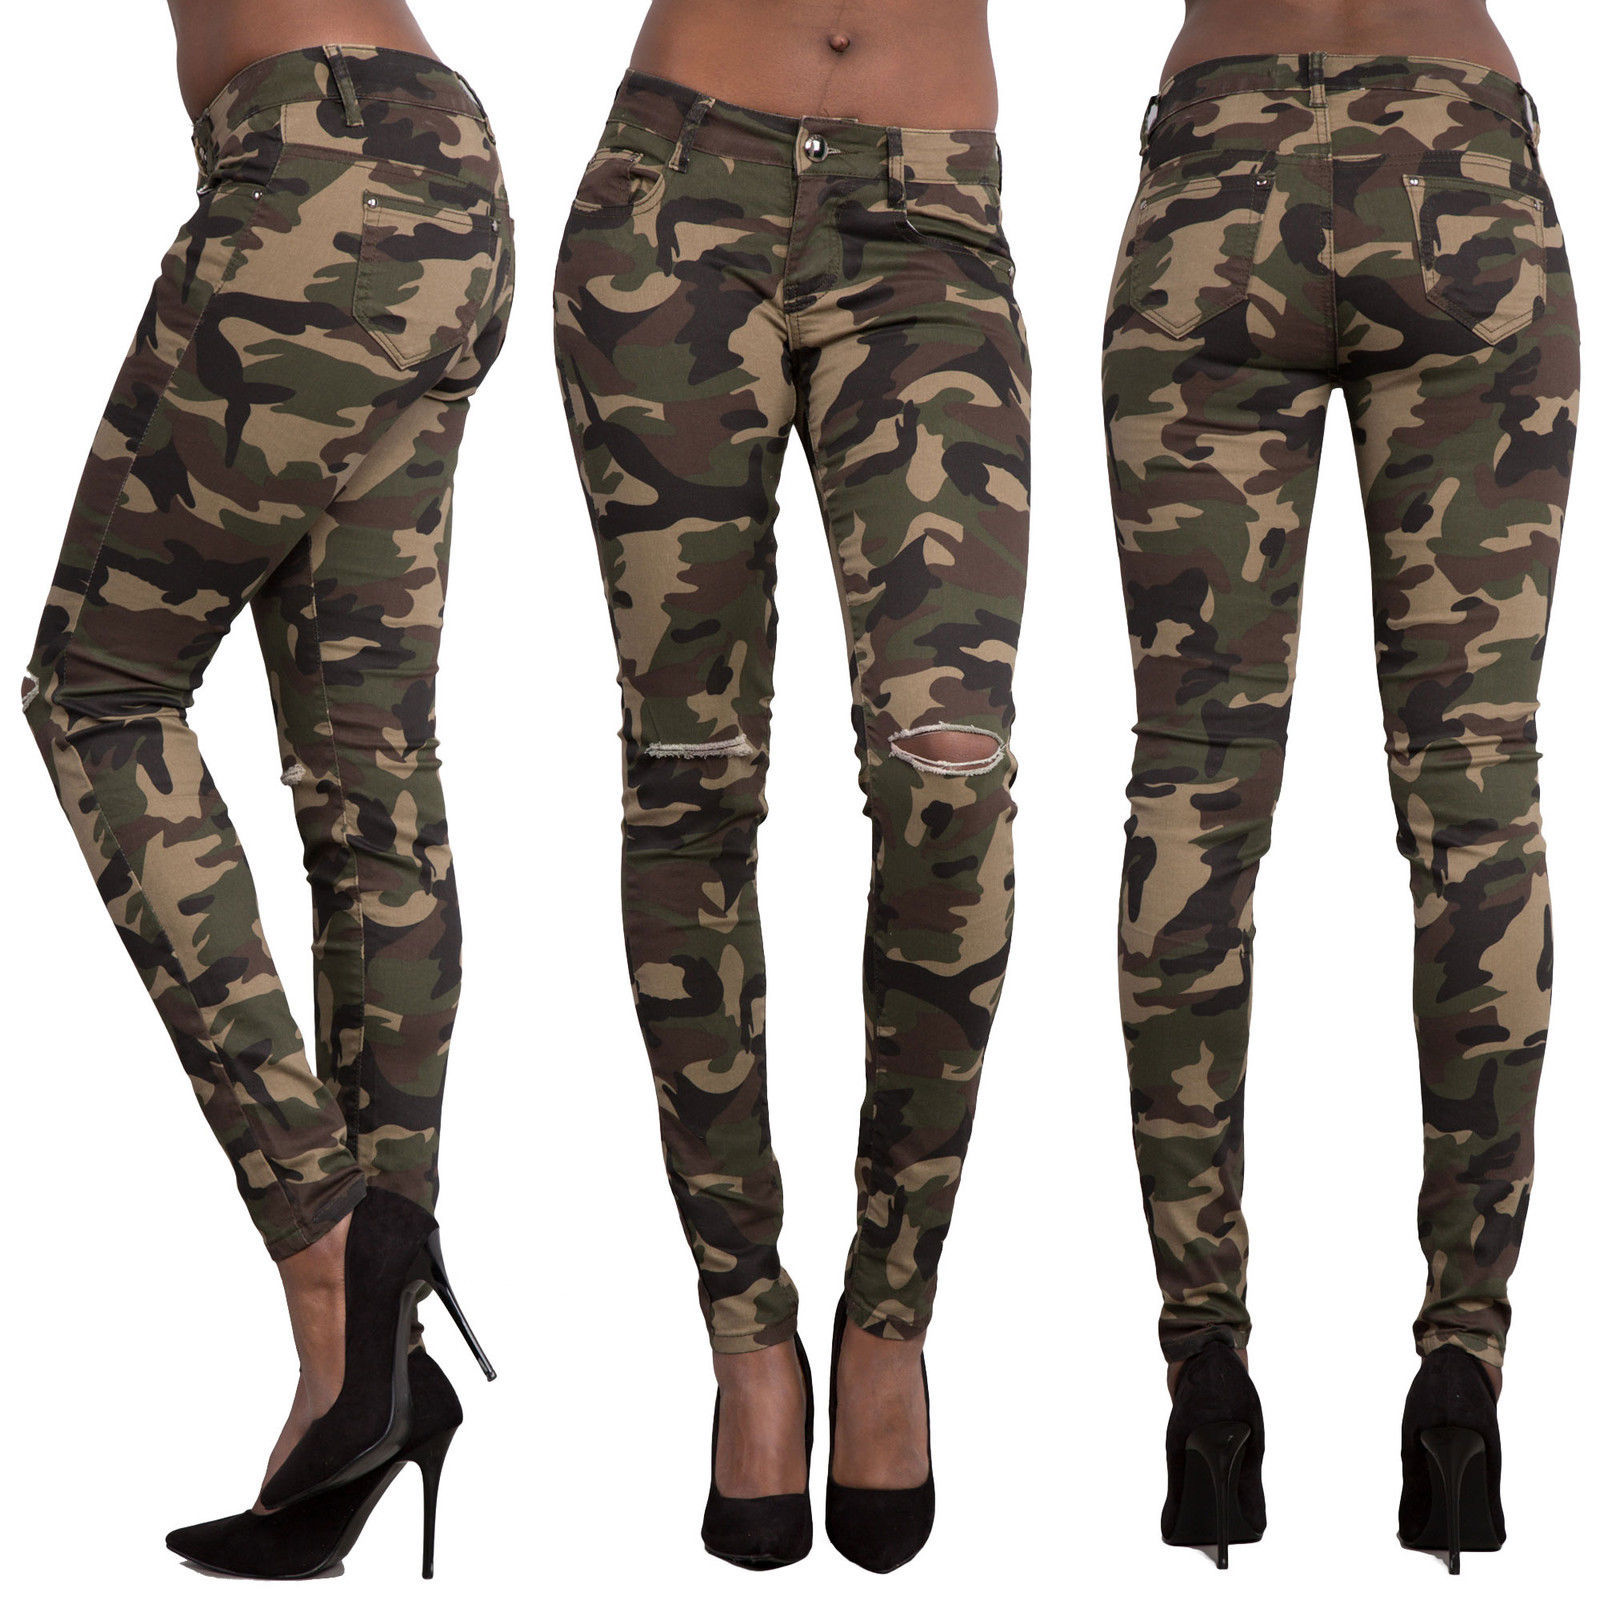 275affd3ddb18 Army Fashion Women Pants Female Casual Military Denim Trousers Tight  Elastic High Waist Camouflage Pencil Pants for Women WJ060-in Jeans from  Women's ...